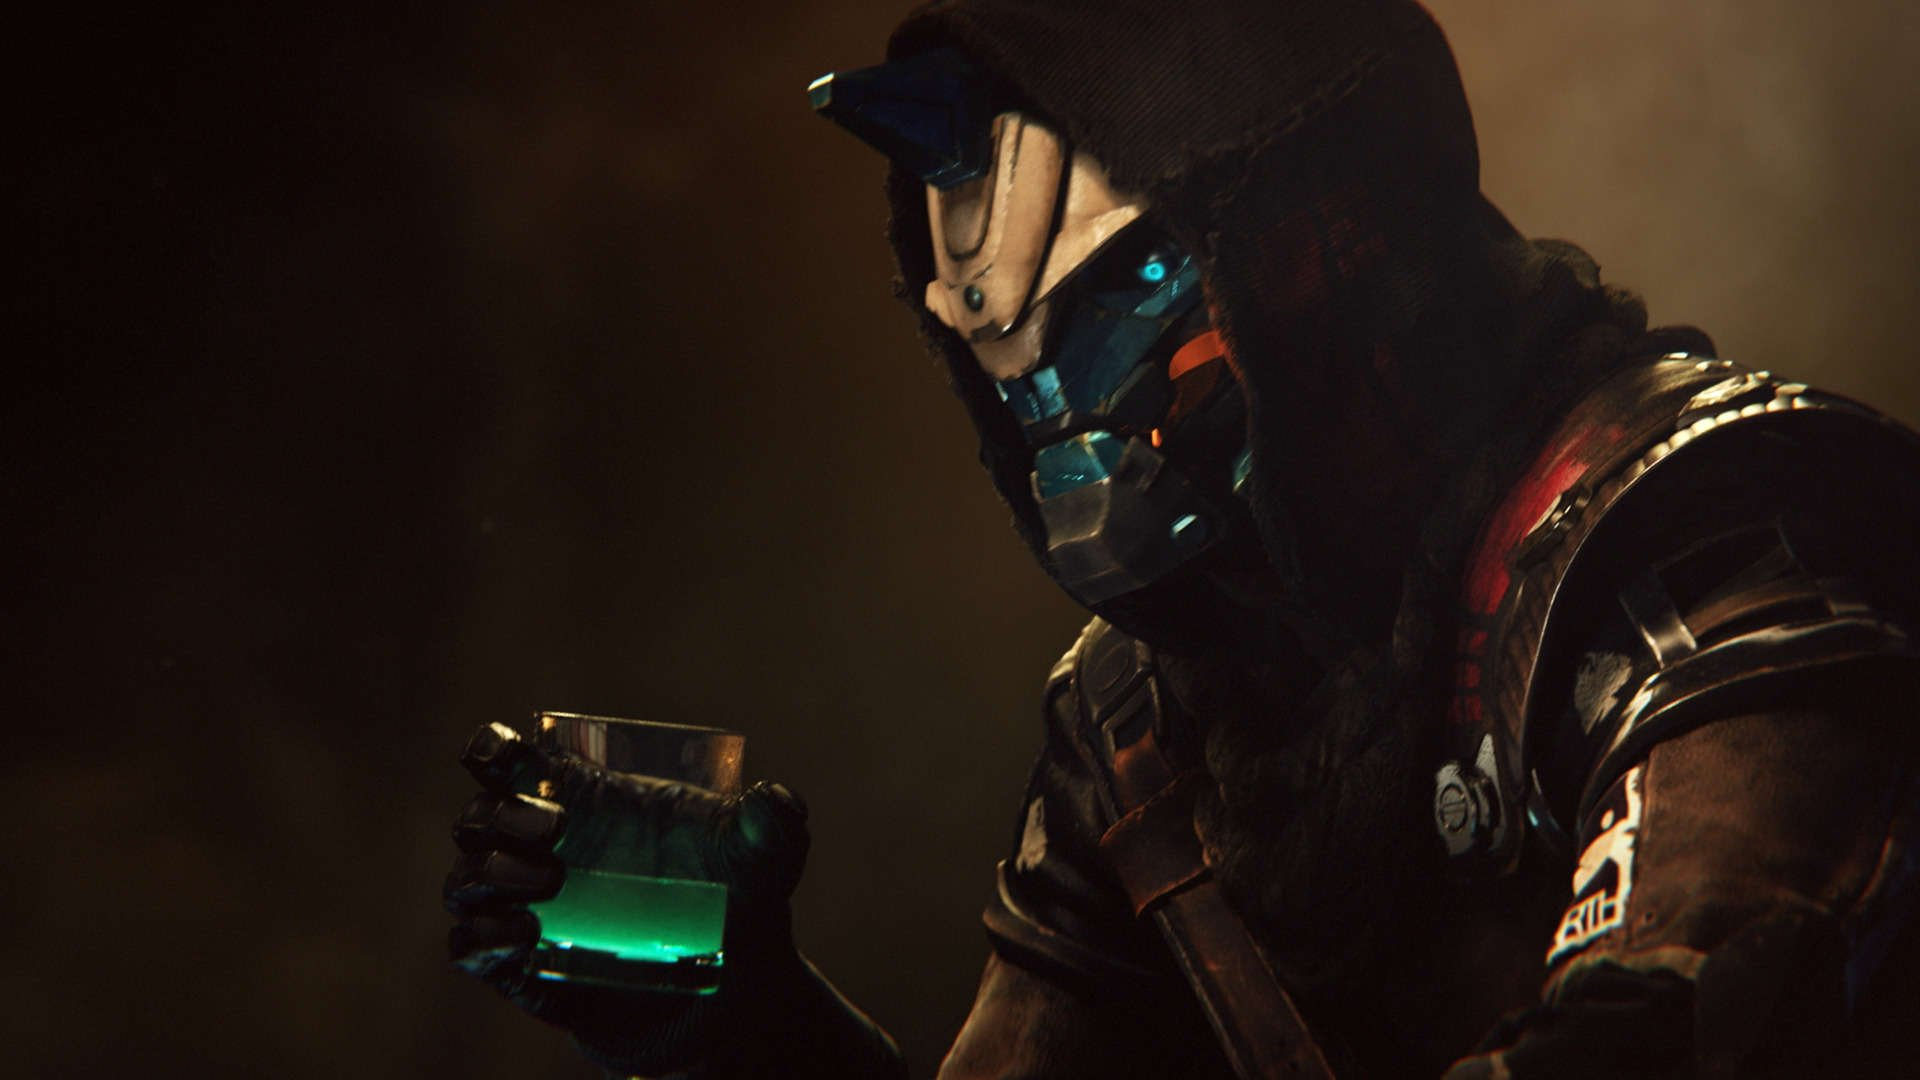 Destiny's Cayde-6 will be voiced by Nolan North in the upcoming Destiny 2: Forsaken DLC screenshot